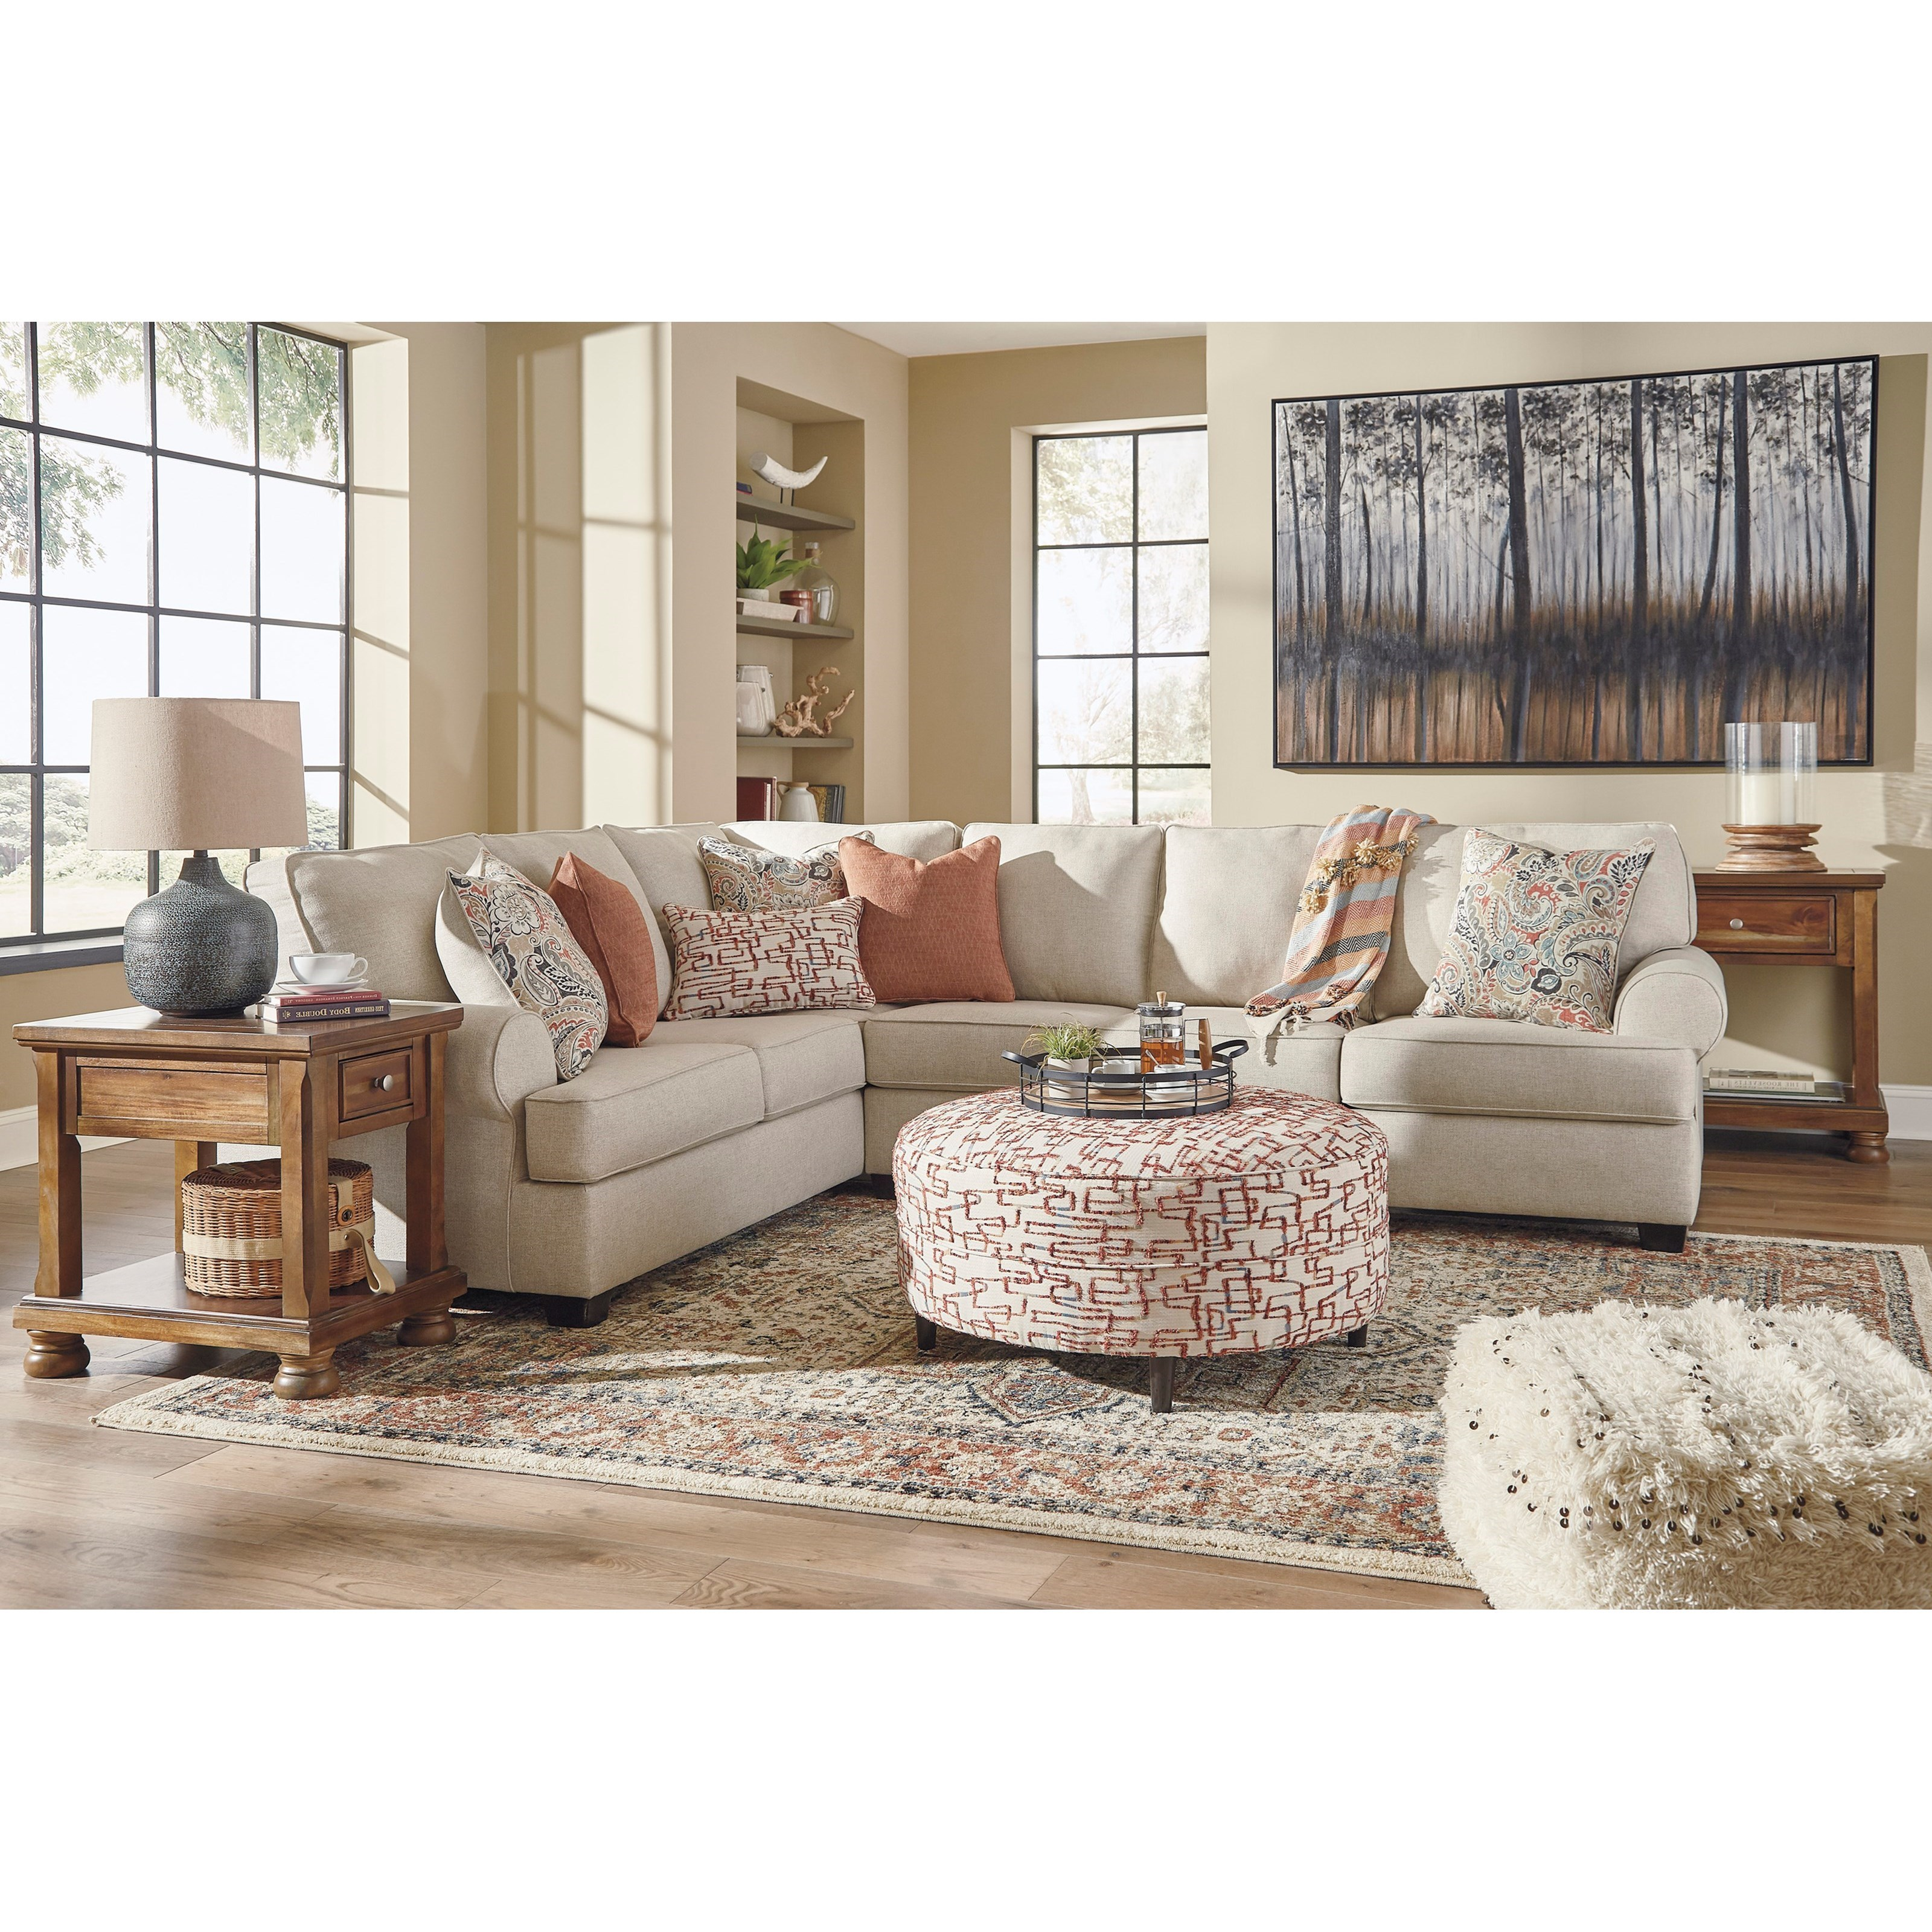 Amici Living Room Group by Signature Design by Ashley at Zak's Warehouse Clearance Center